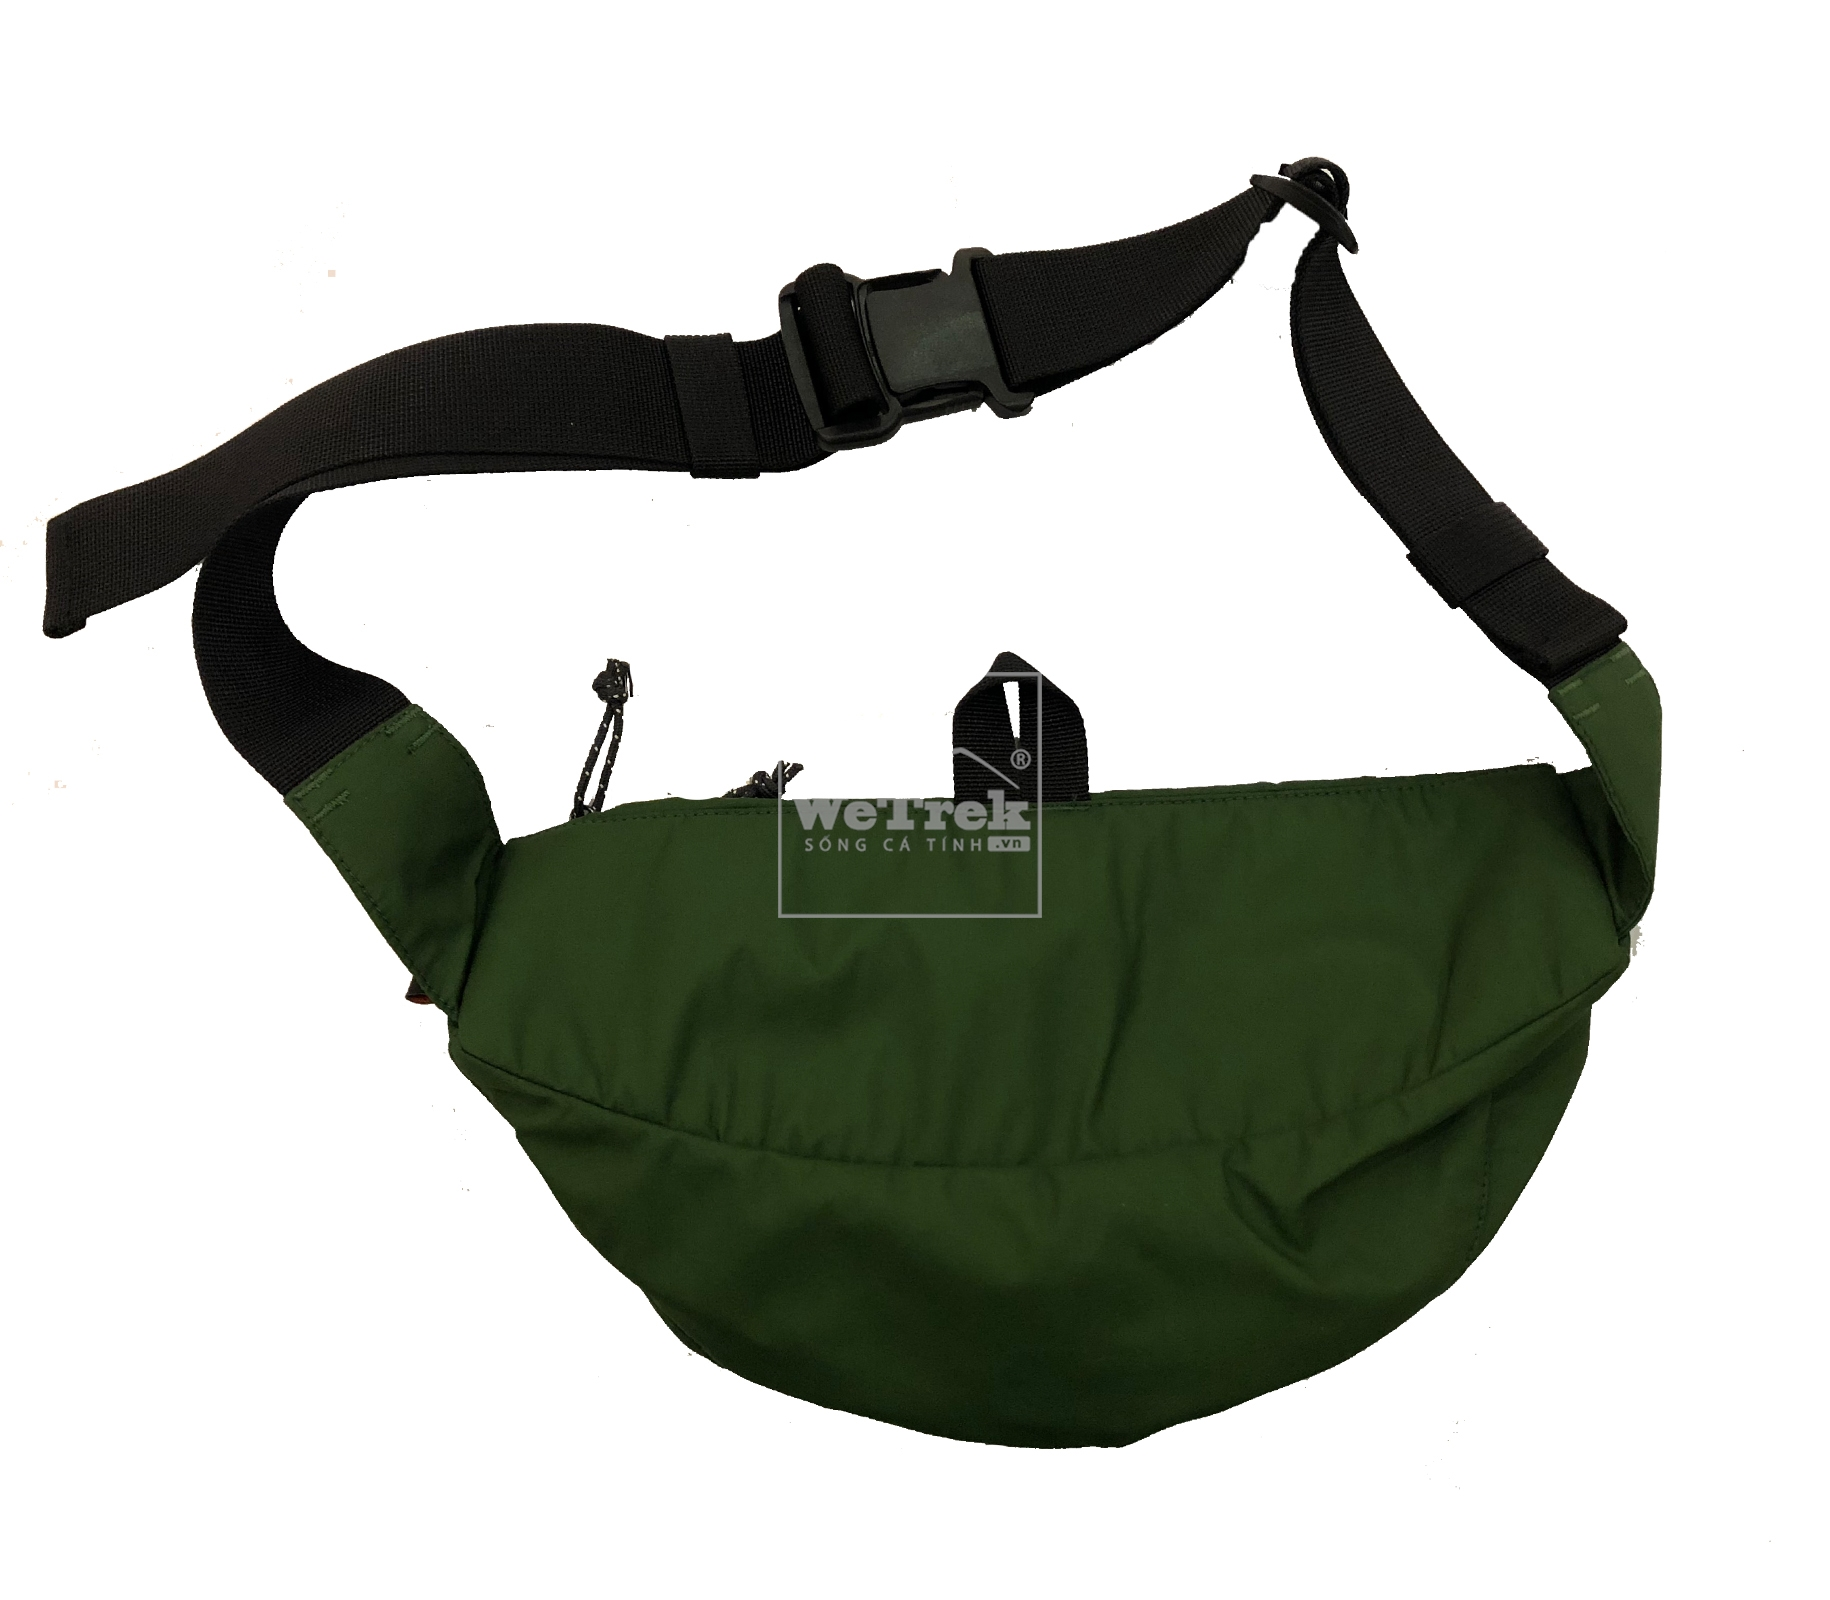 3-tui-deo-hong-Weather-Guide-Mini-Waist-Bag-CA-0135-8302-wetrekvn.jpg